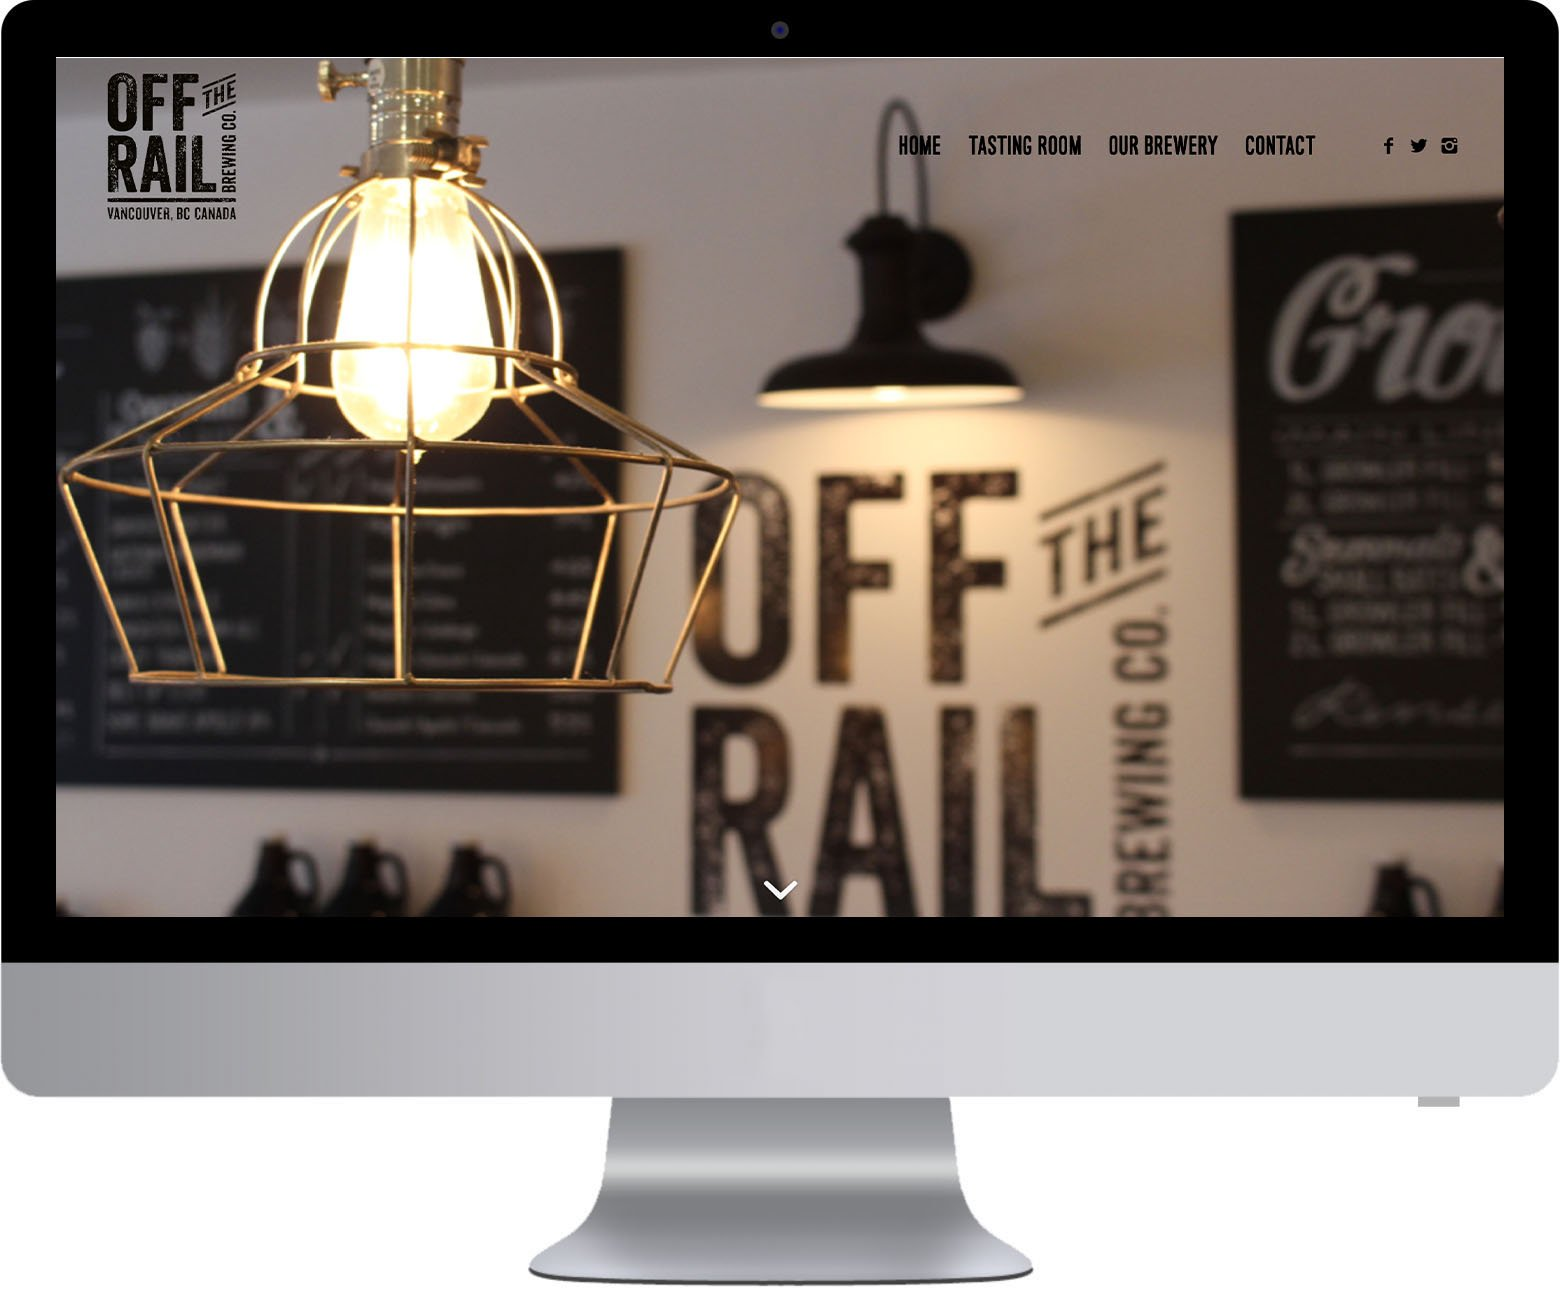 Vancouver WordPress Web Development - Off The Rail Brewing